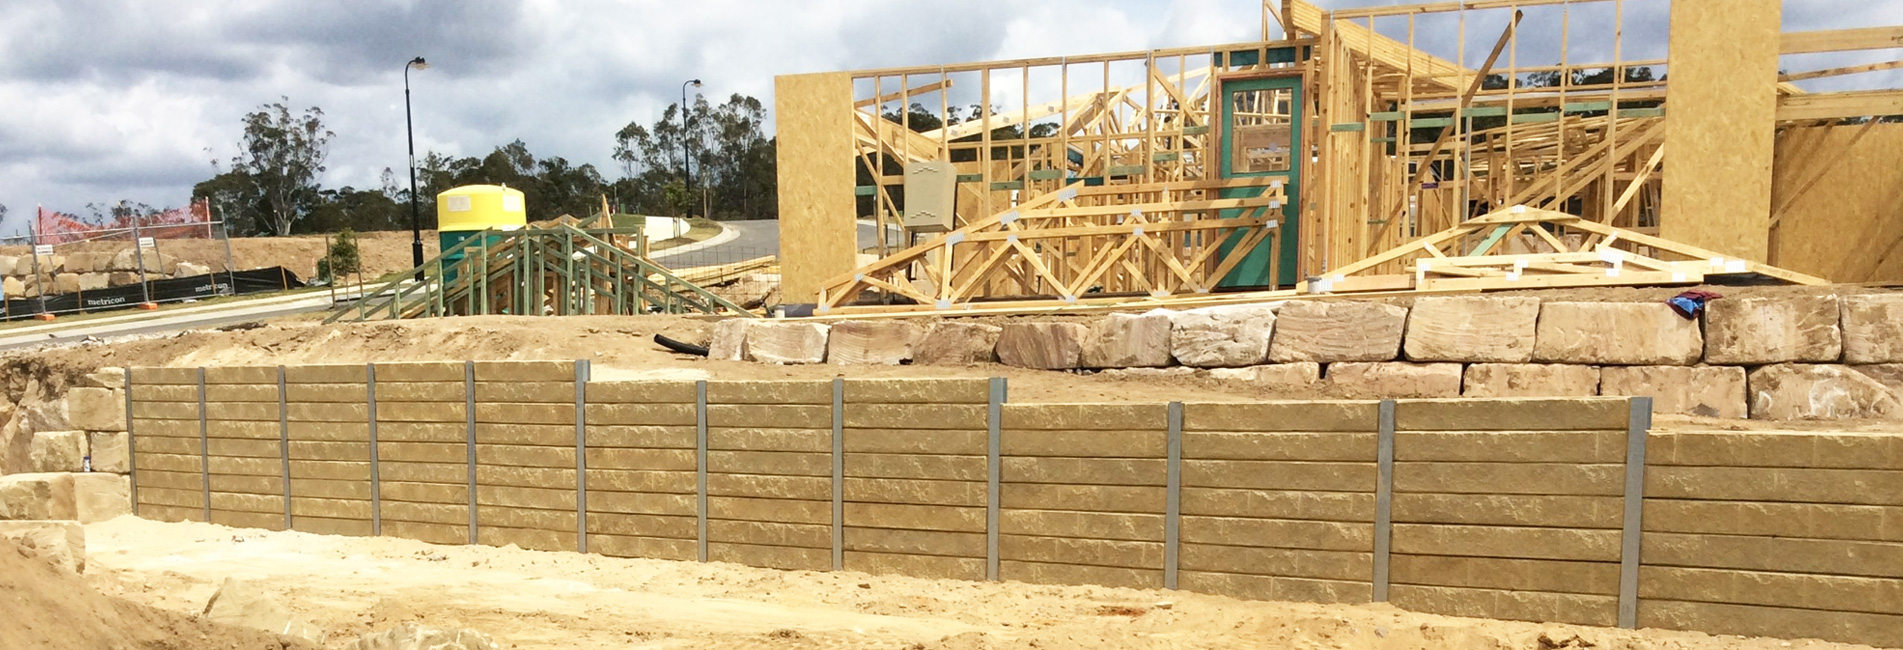 Concrete Retaining Walls Wishart, Retainer Wall Brisbane, Timber Fencing Ripley